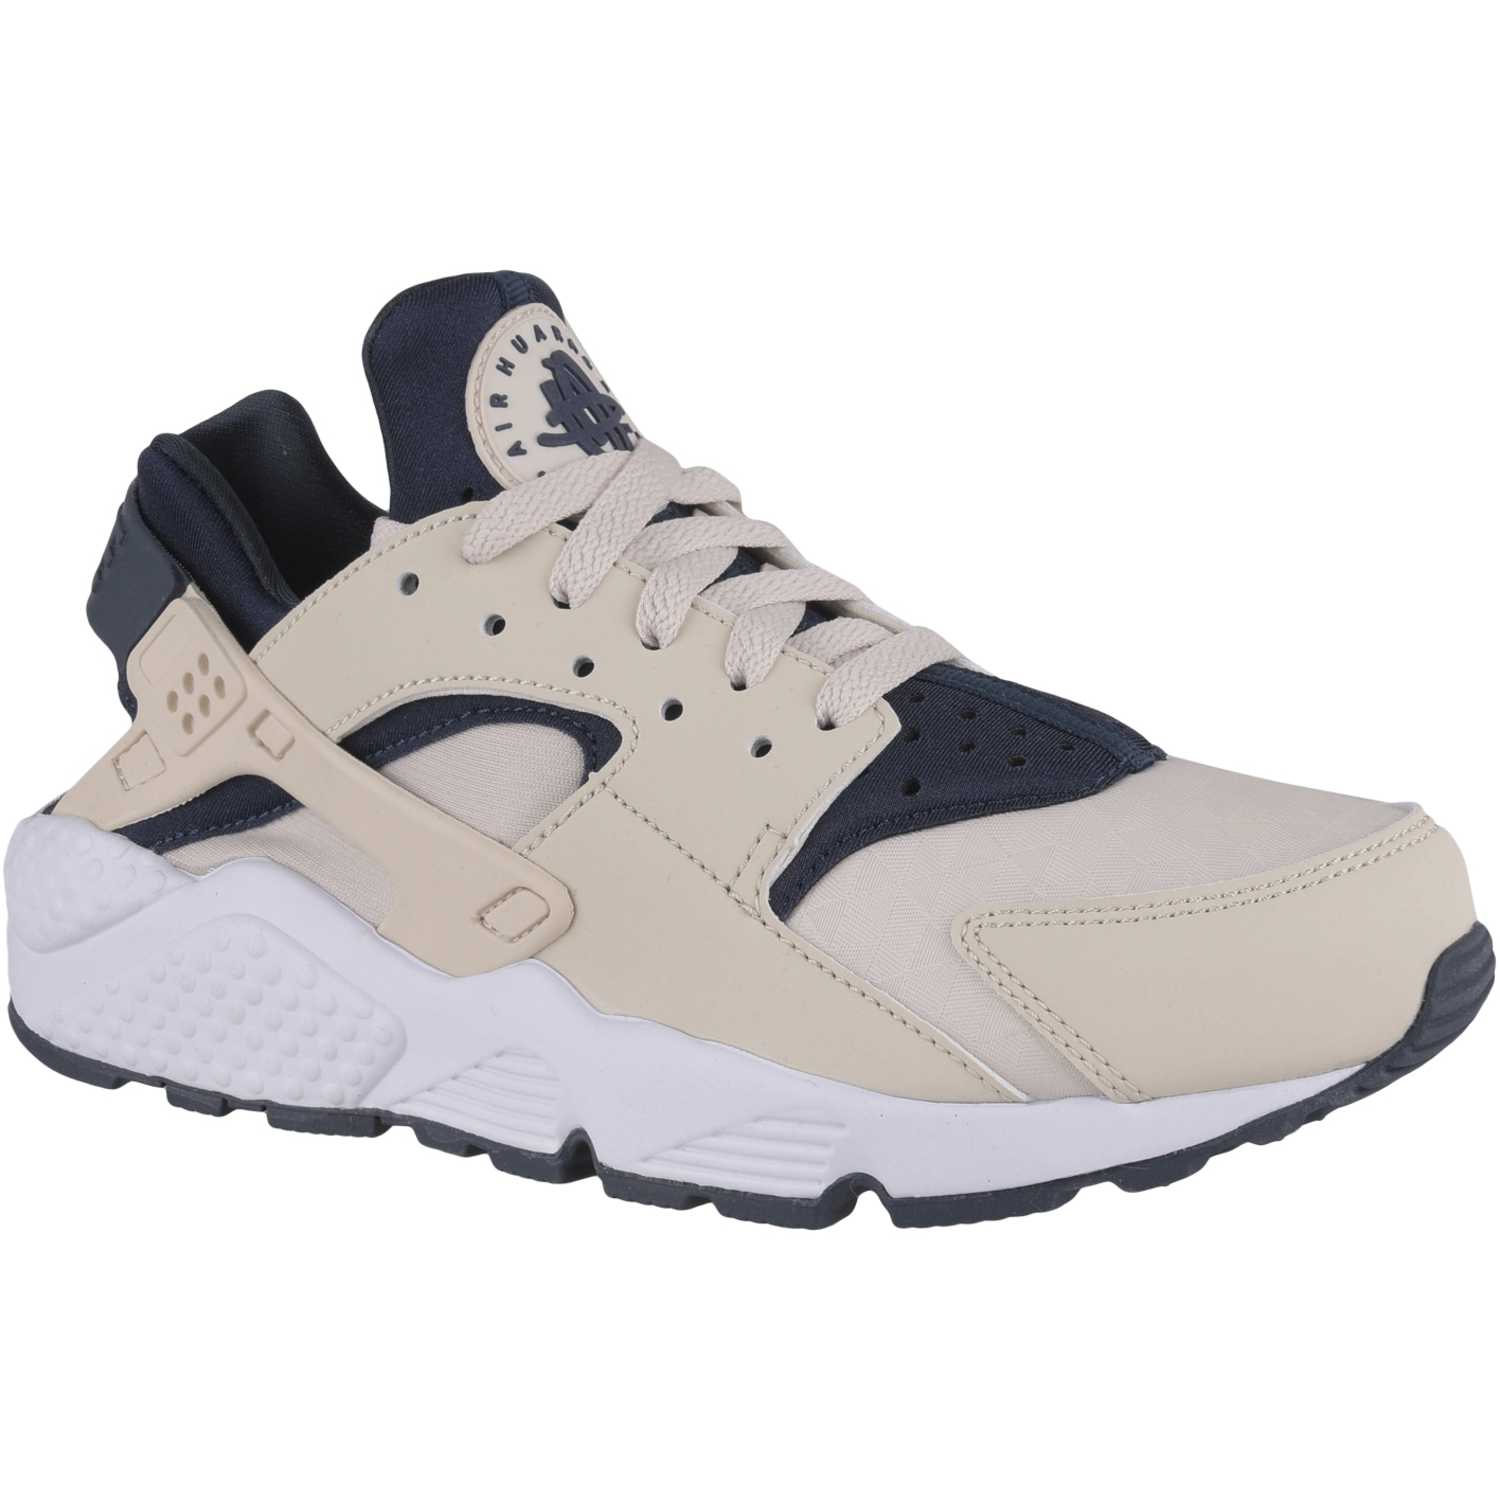 the best attitude 17697 91fcc Cuña de Mujer Nike Beige / azul wmns air huarache run ...